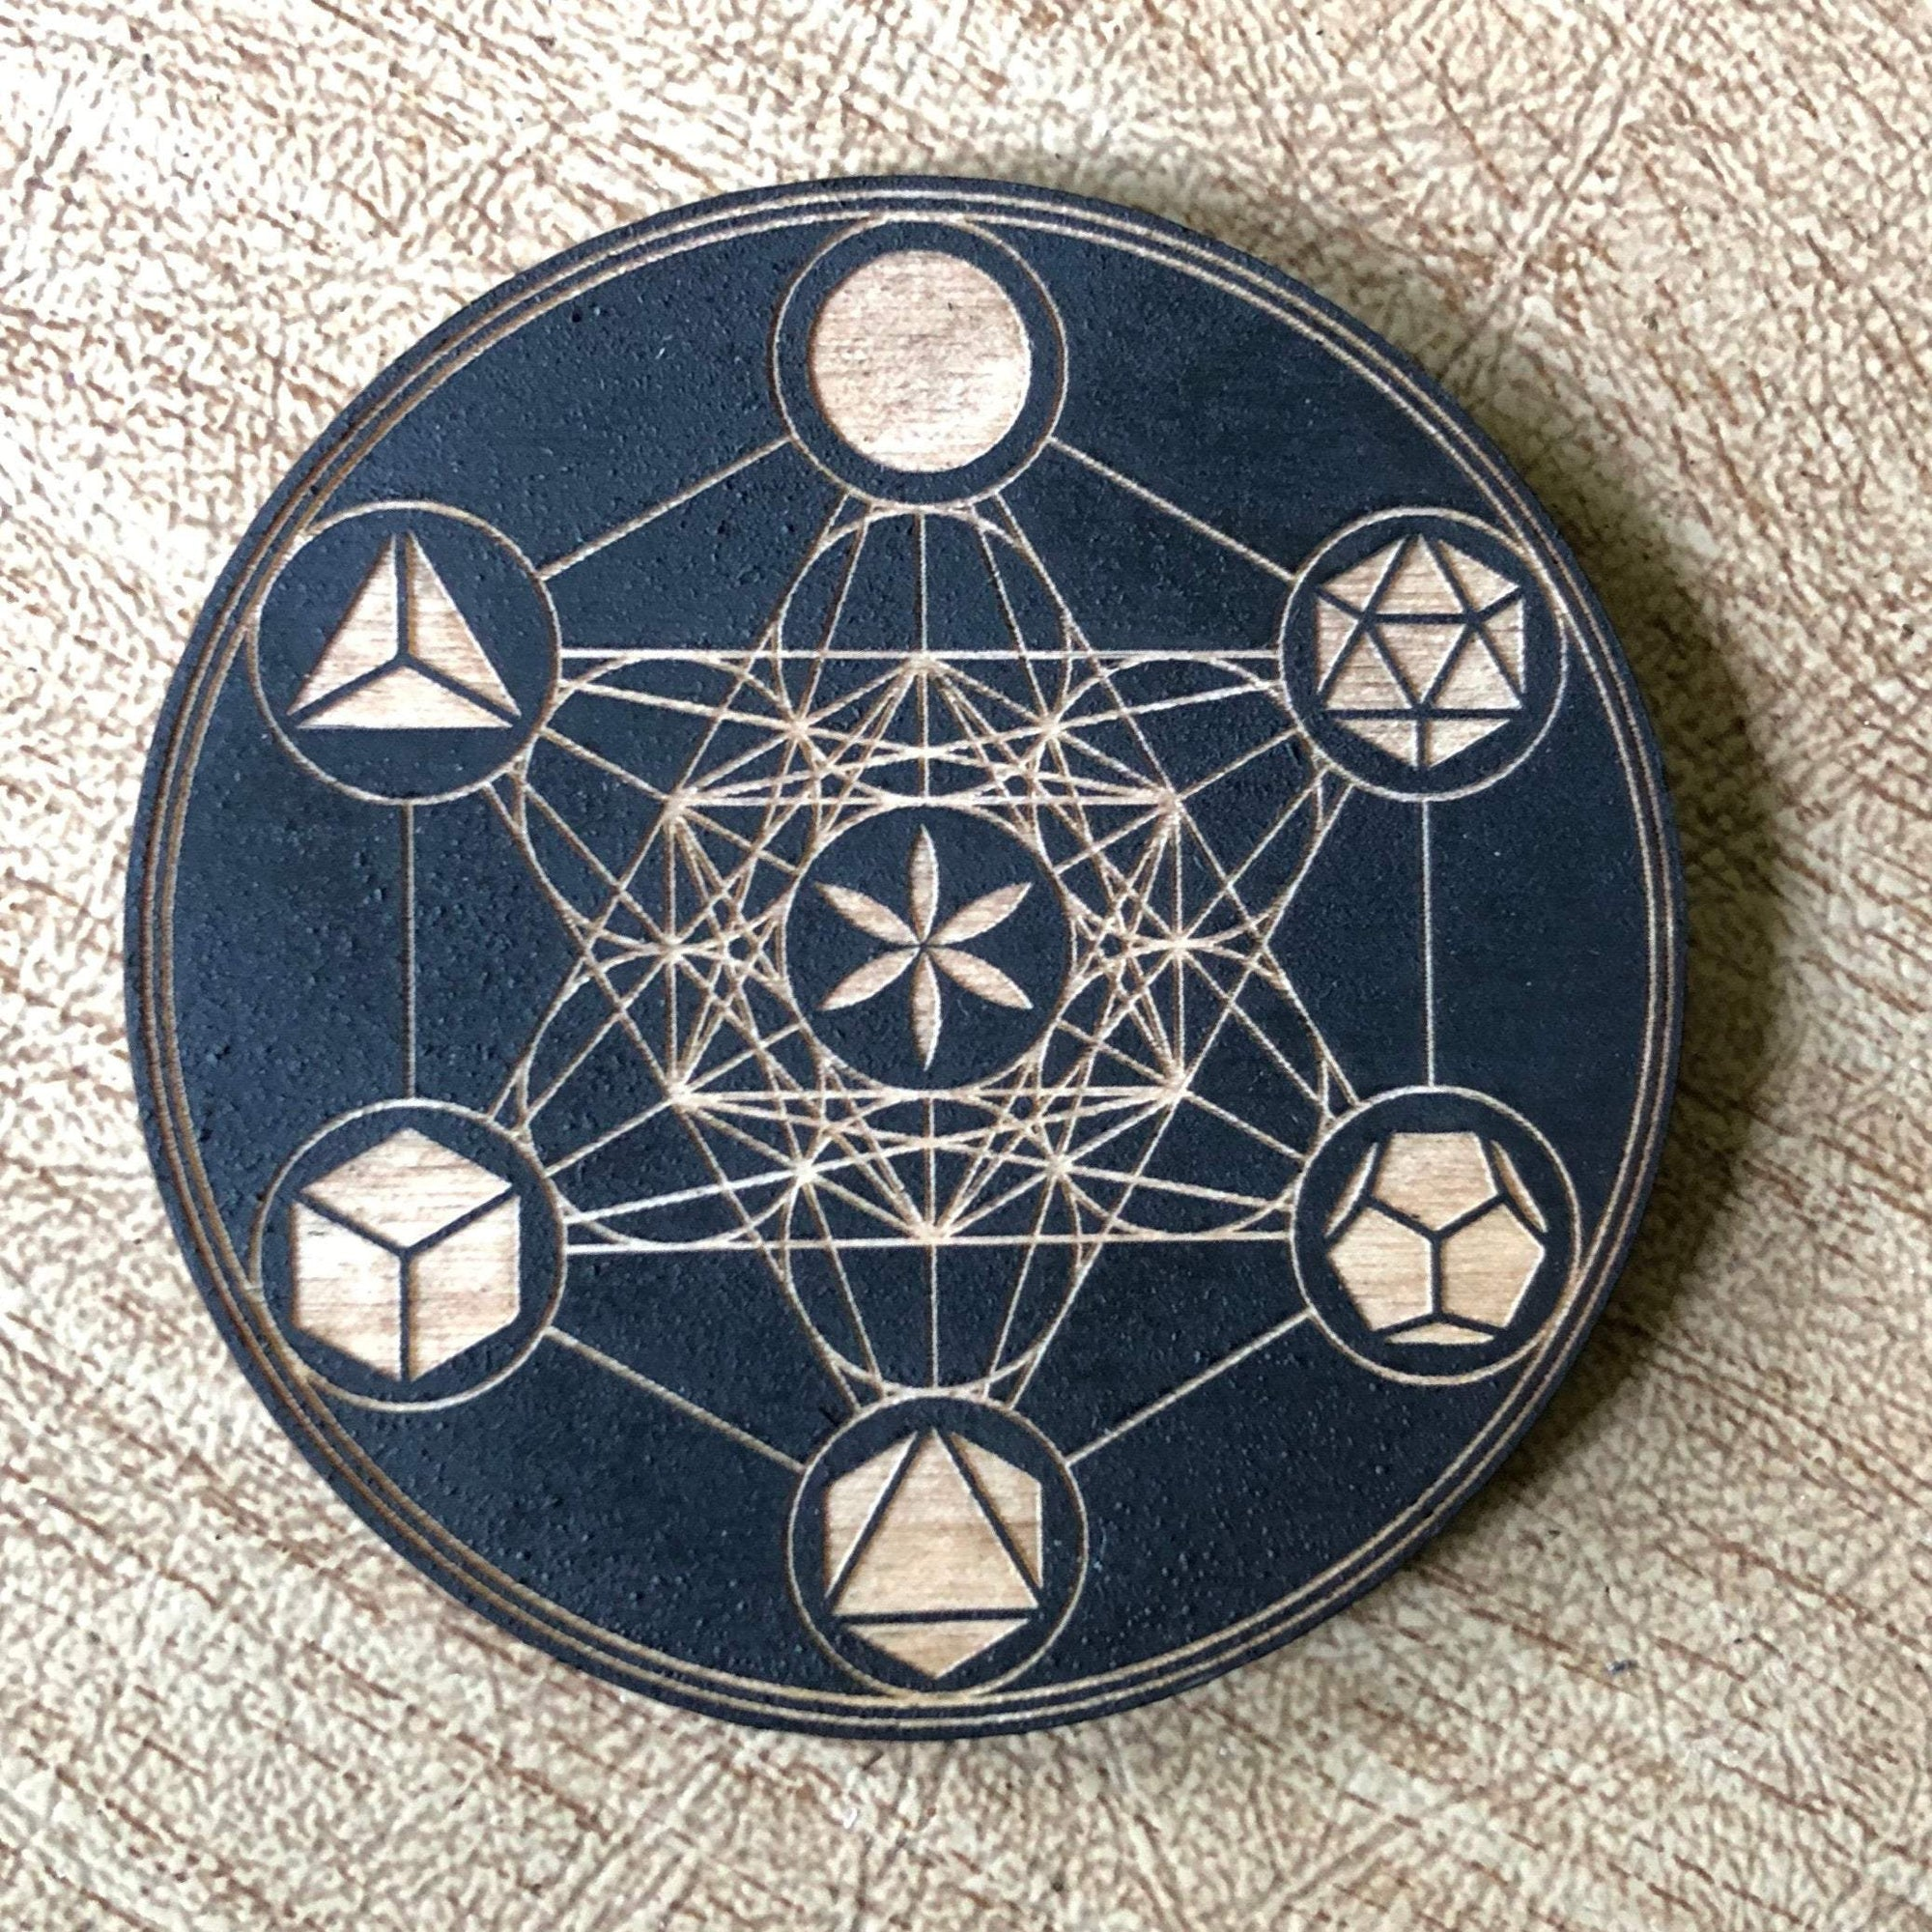 Painted Metatron's Cube Magnet